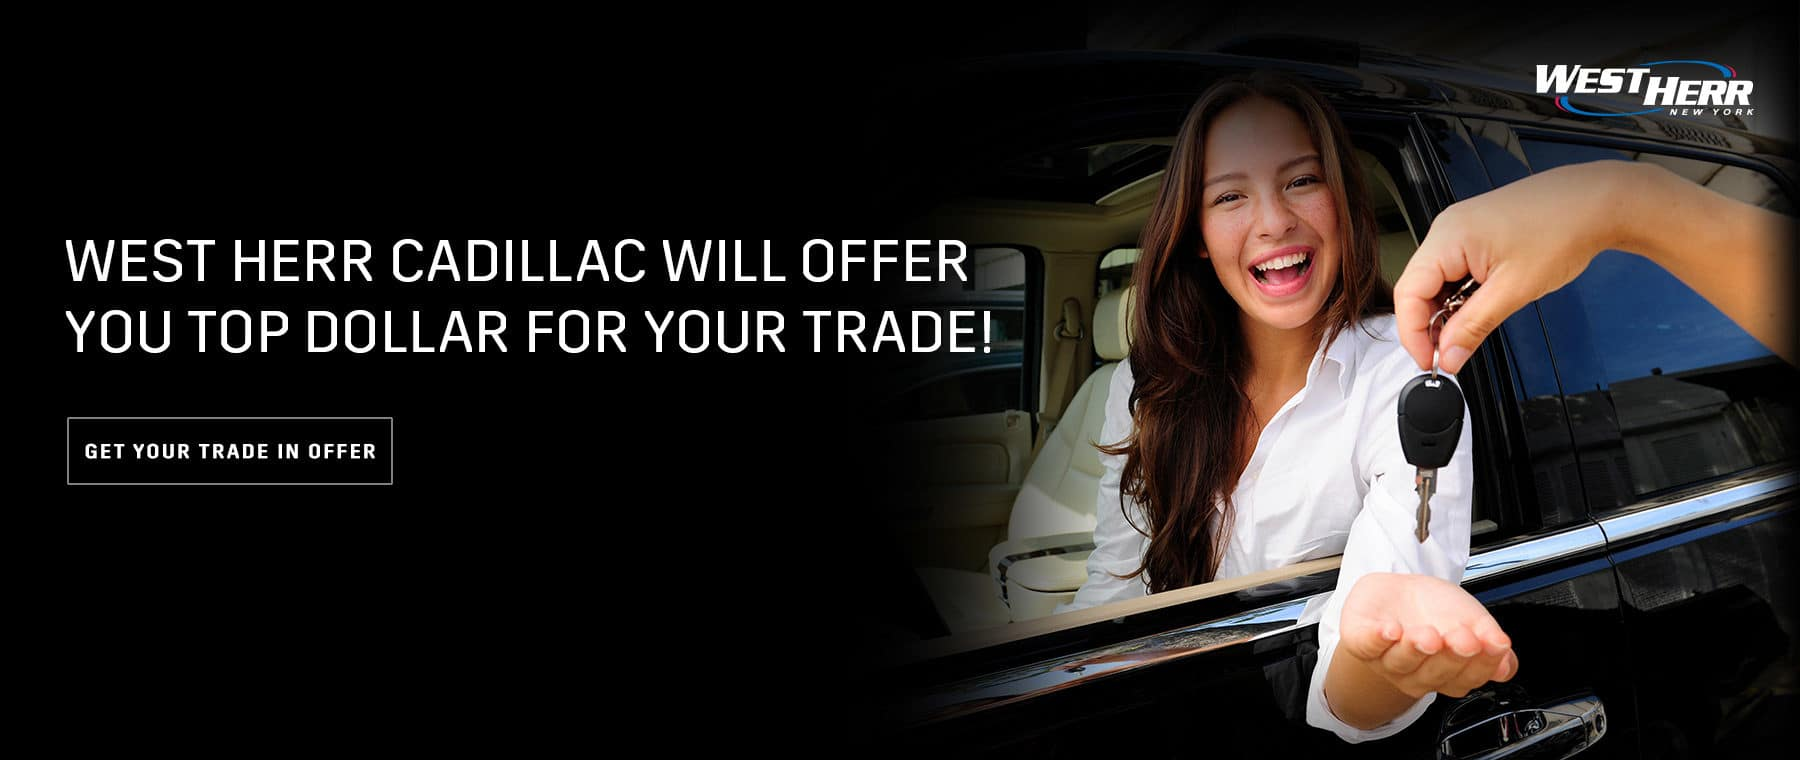 West Herr Cadillac will offer you top dollar for your trade!